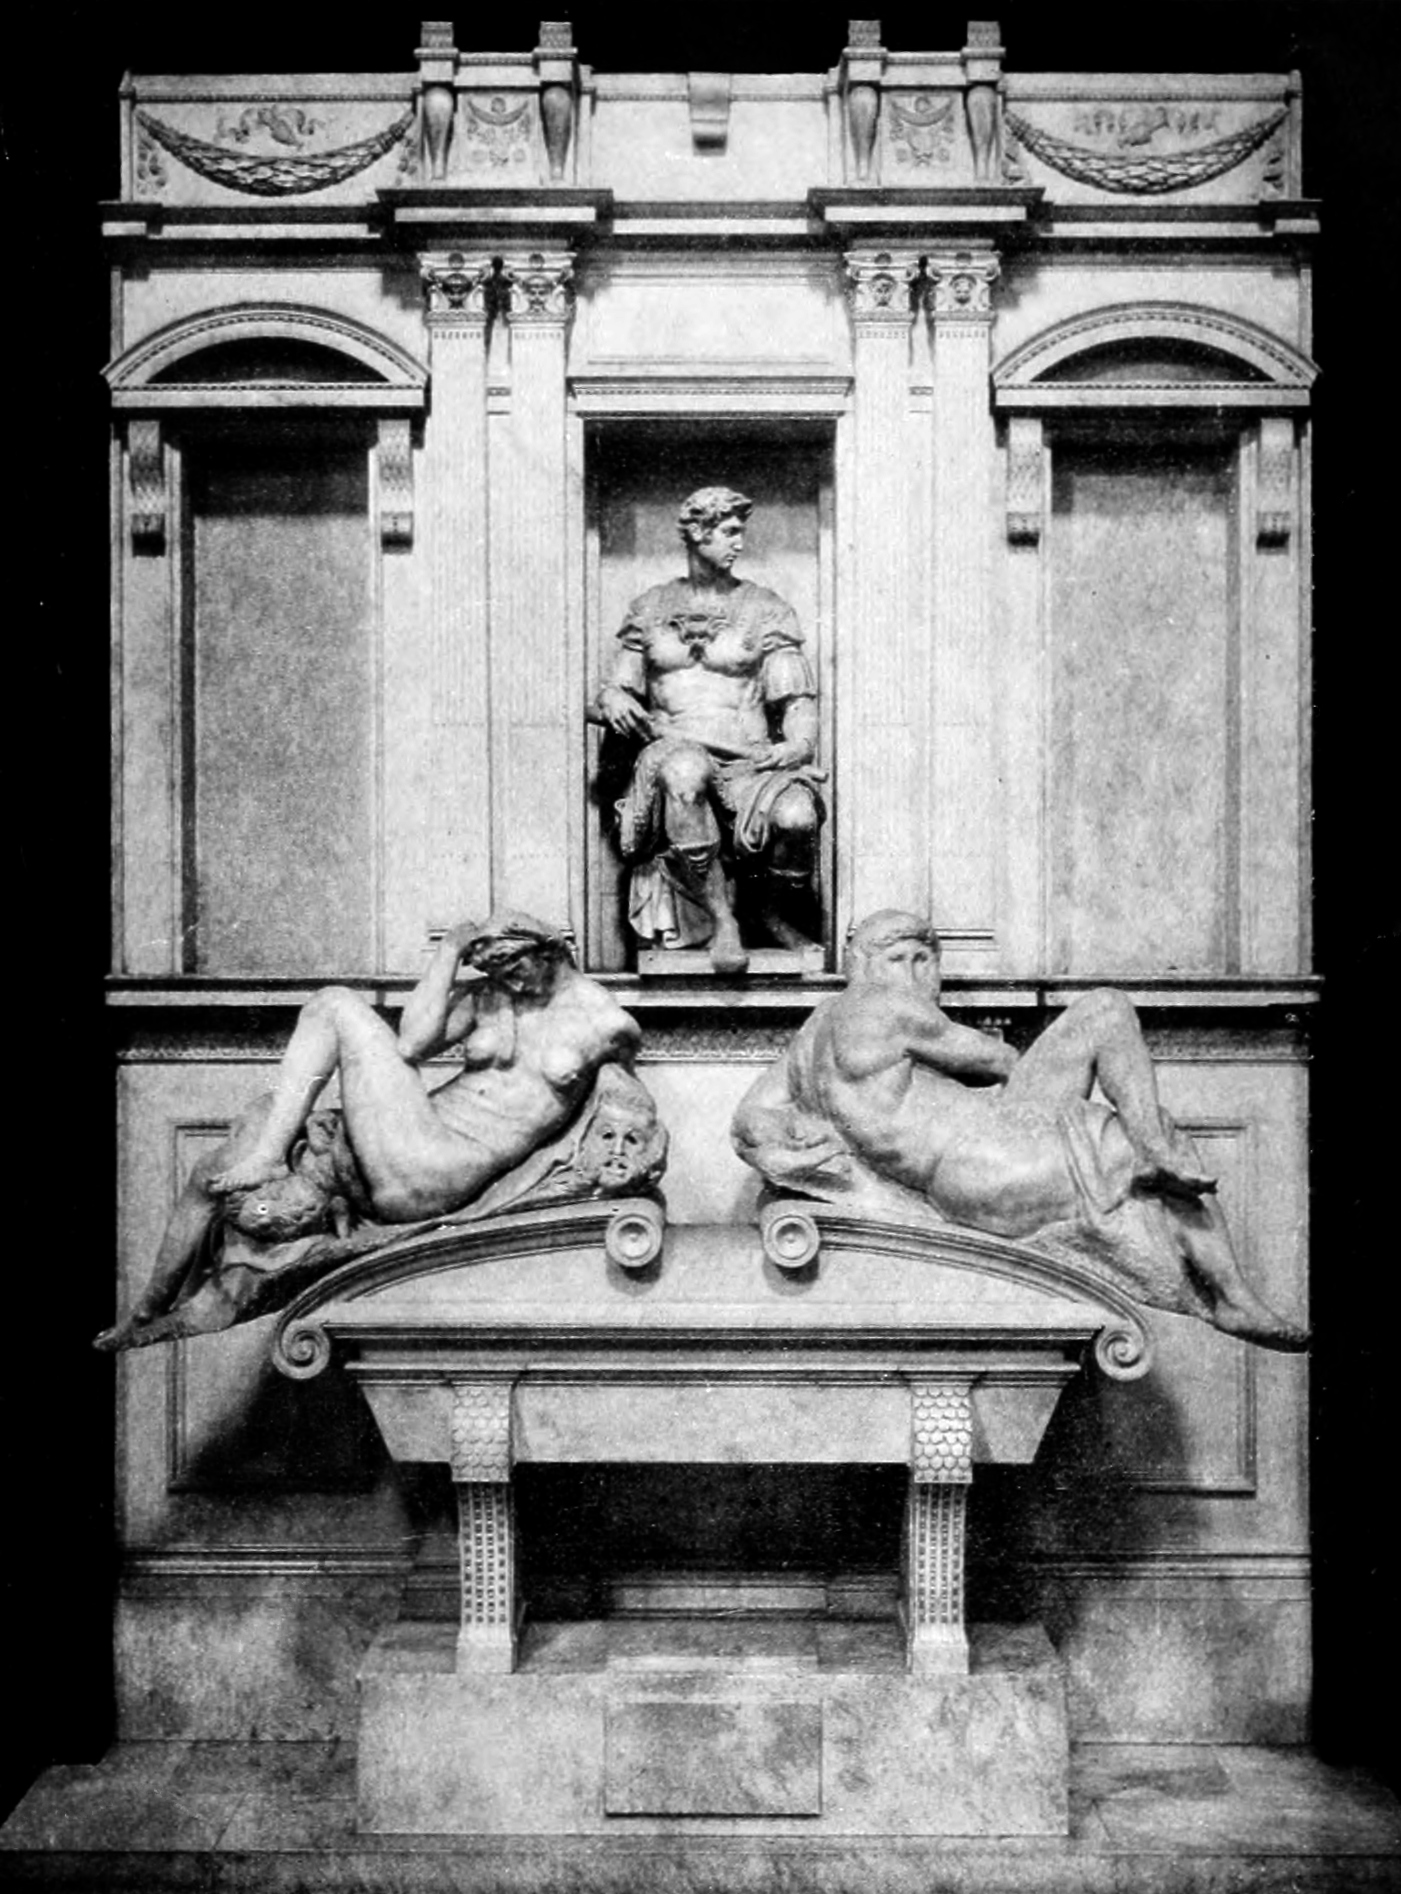 Tomb of Giuliano de Medici featuring Night and Day by Michelangelo in the Medici Chapel, Florence, Italy